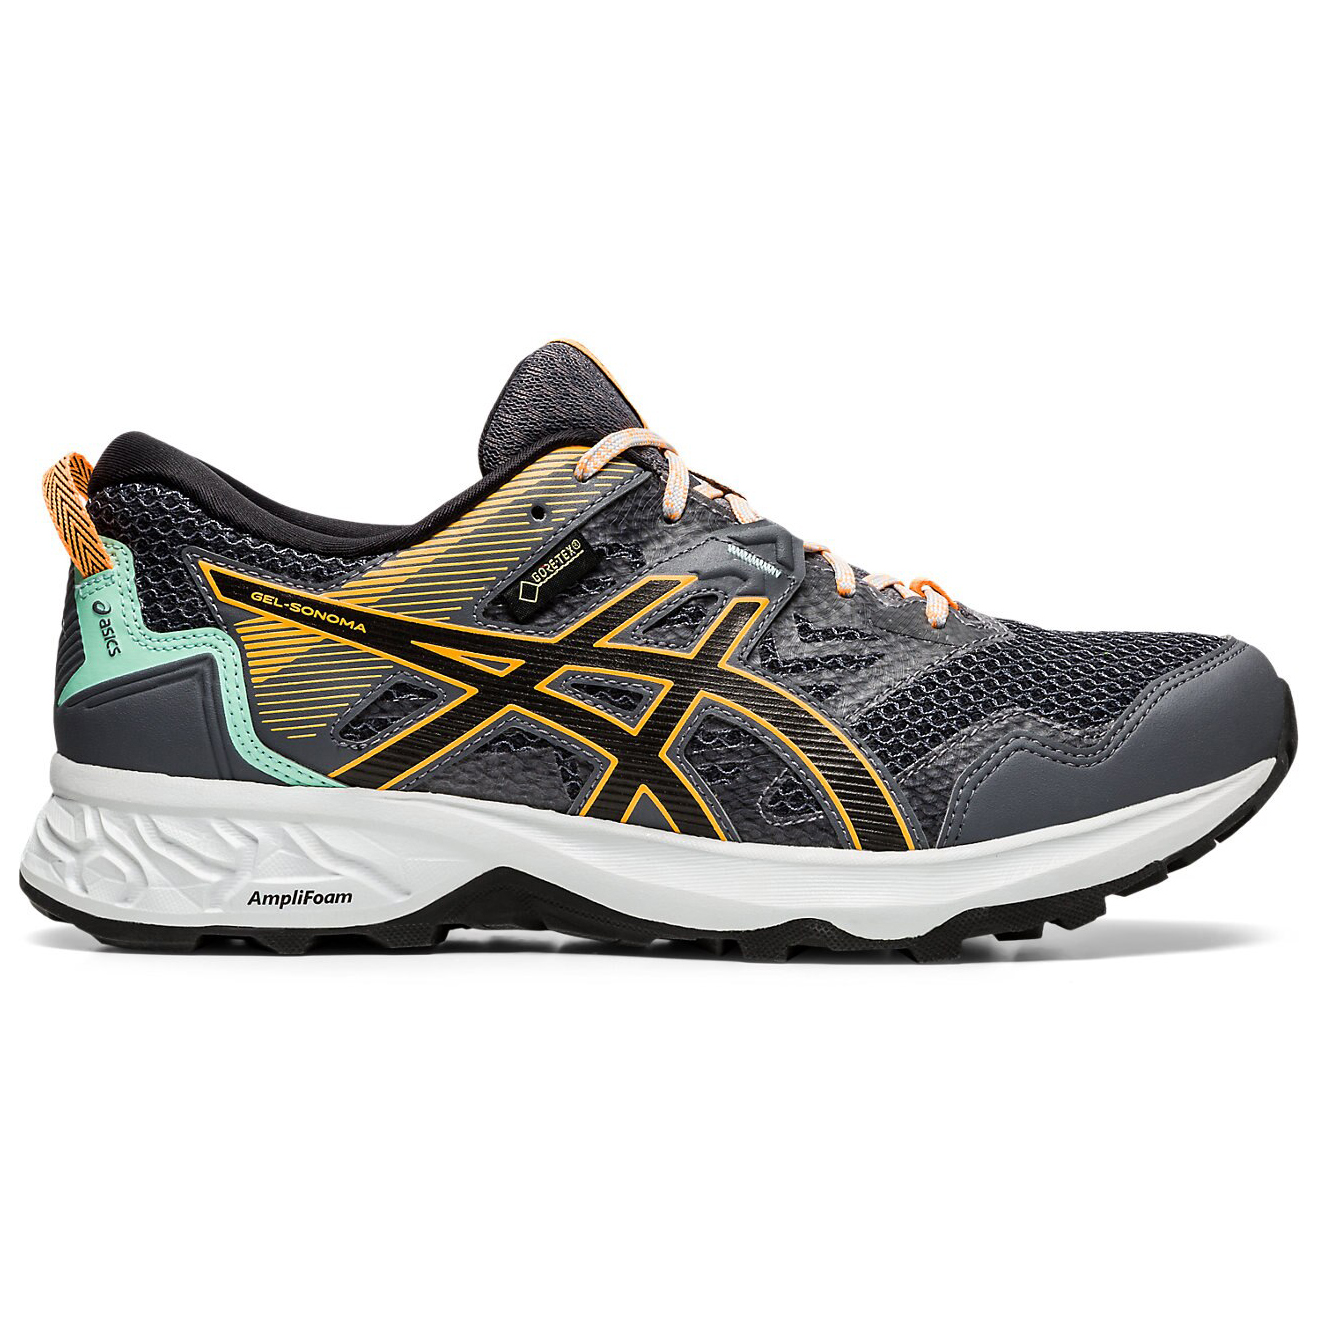 Asics - Women's Gel-Sonoma 5 GTX - Trail running shoes - Black / Black |  5,5 (US)